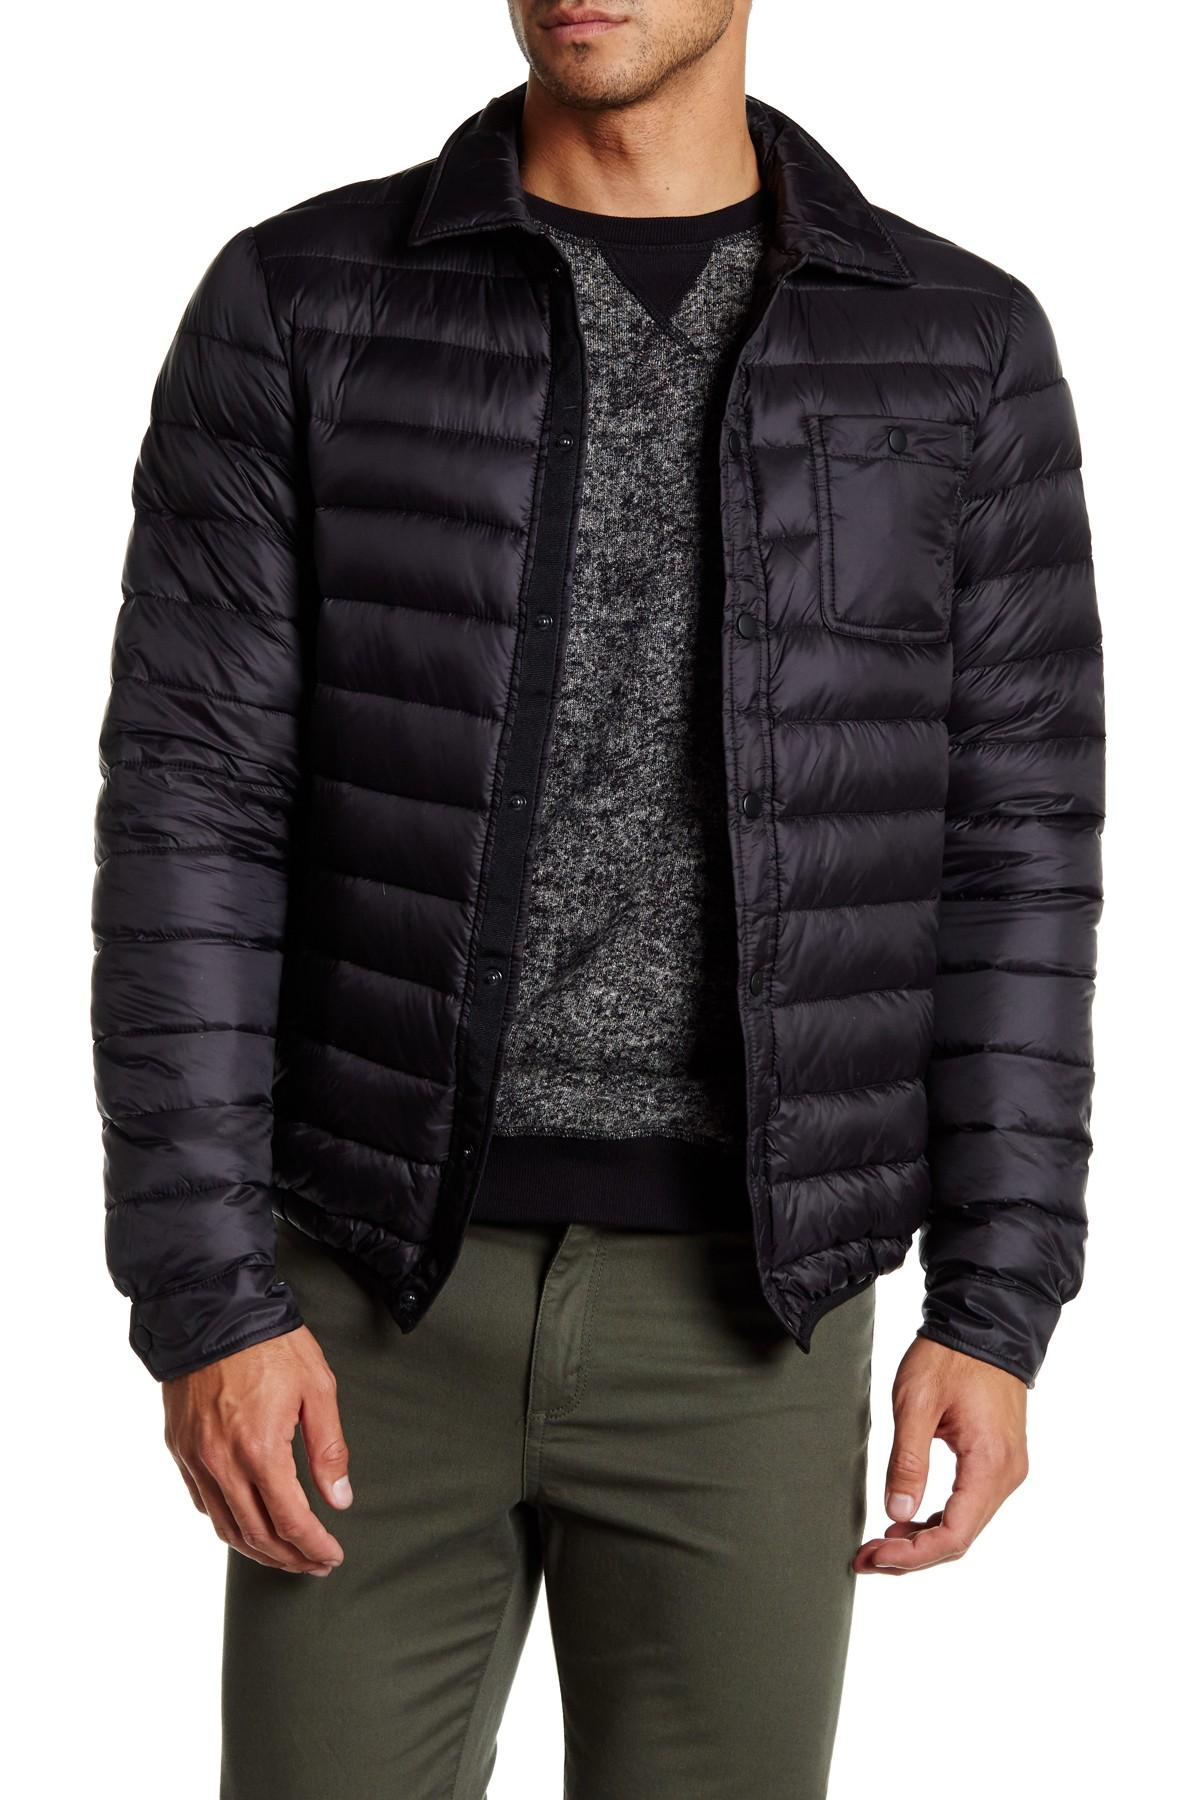 Slate And Stone Clothing : Lyst slate stone light feather down jacket in black